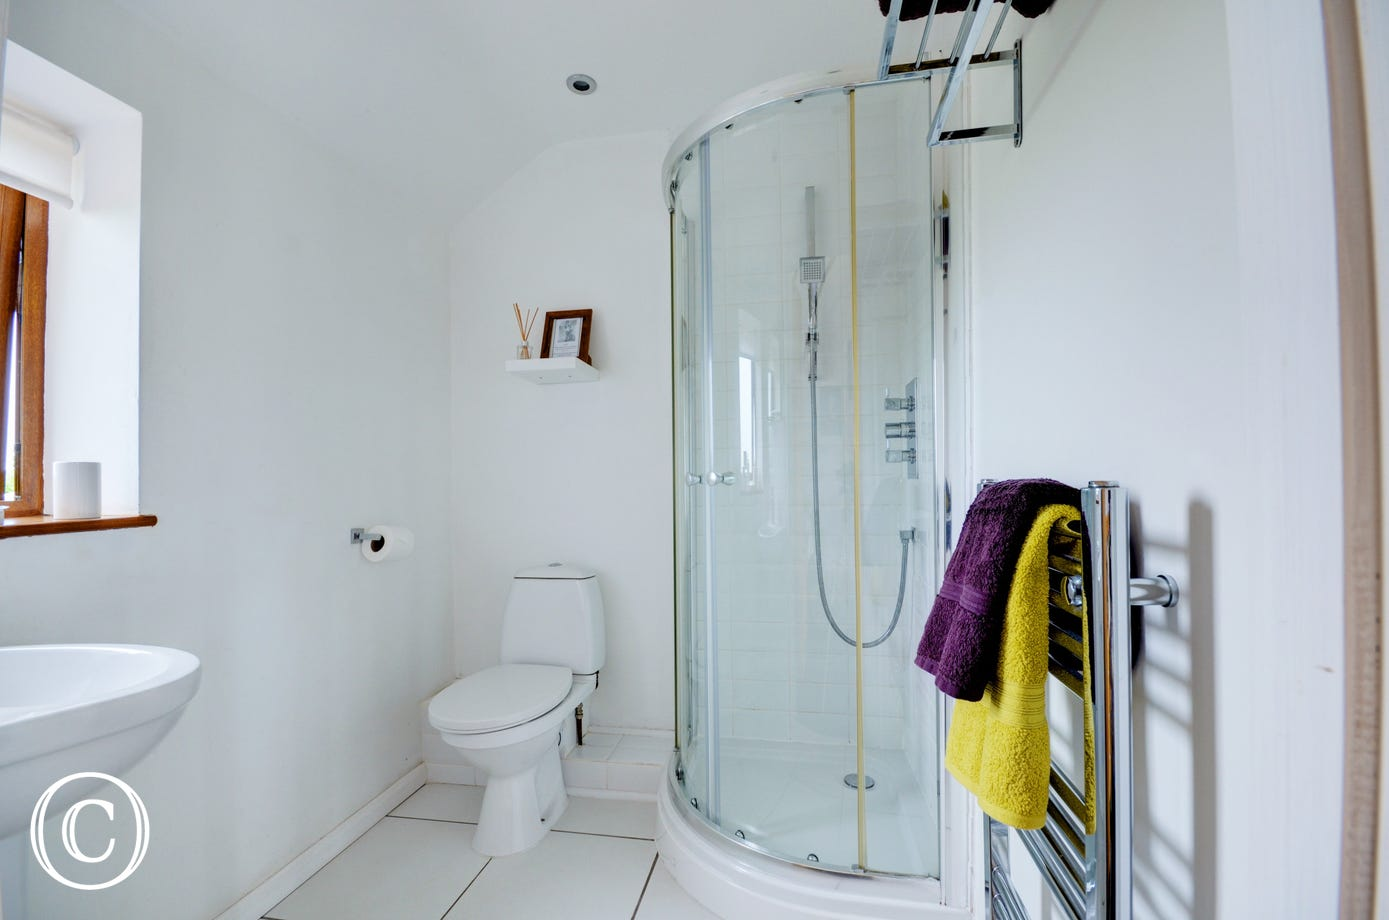 Modern and bright shower room with shower cubicle